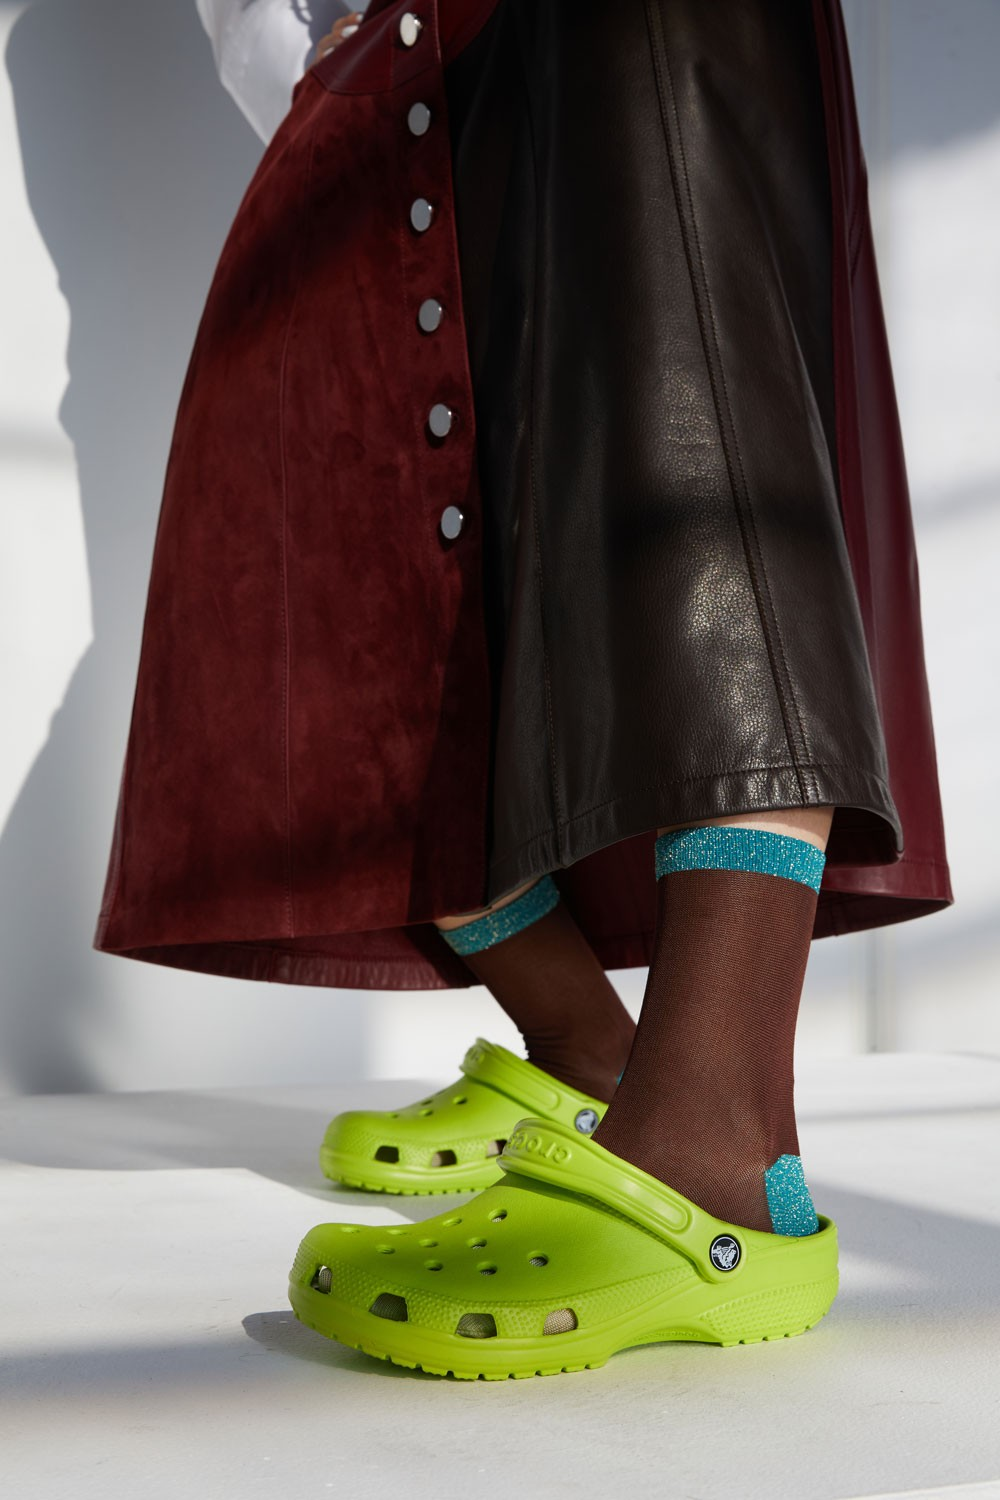 crocs the bae classic clog outfit ideas style guide